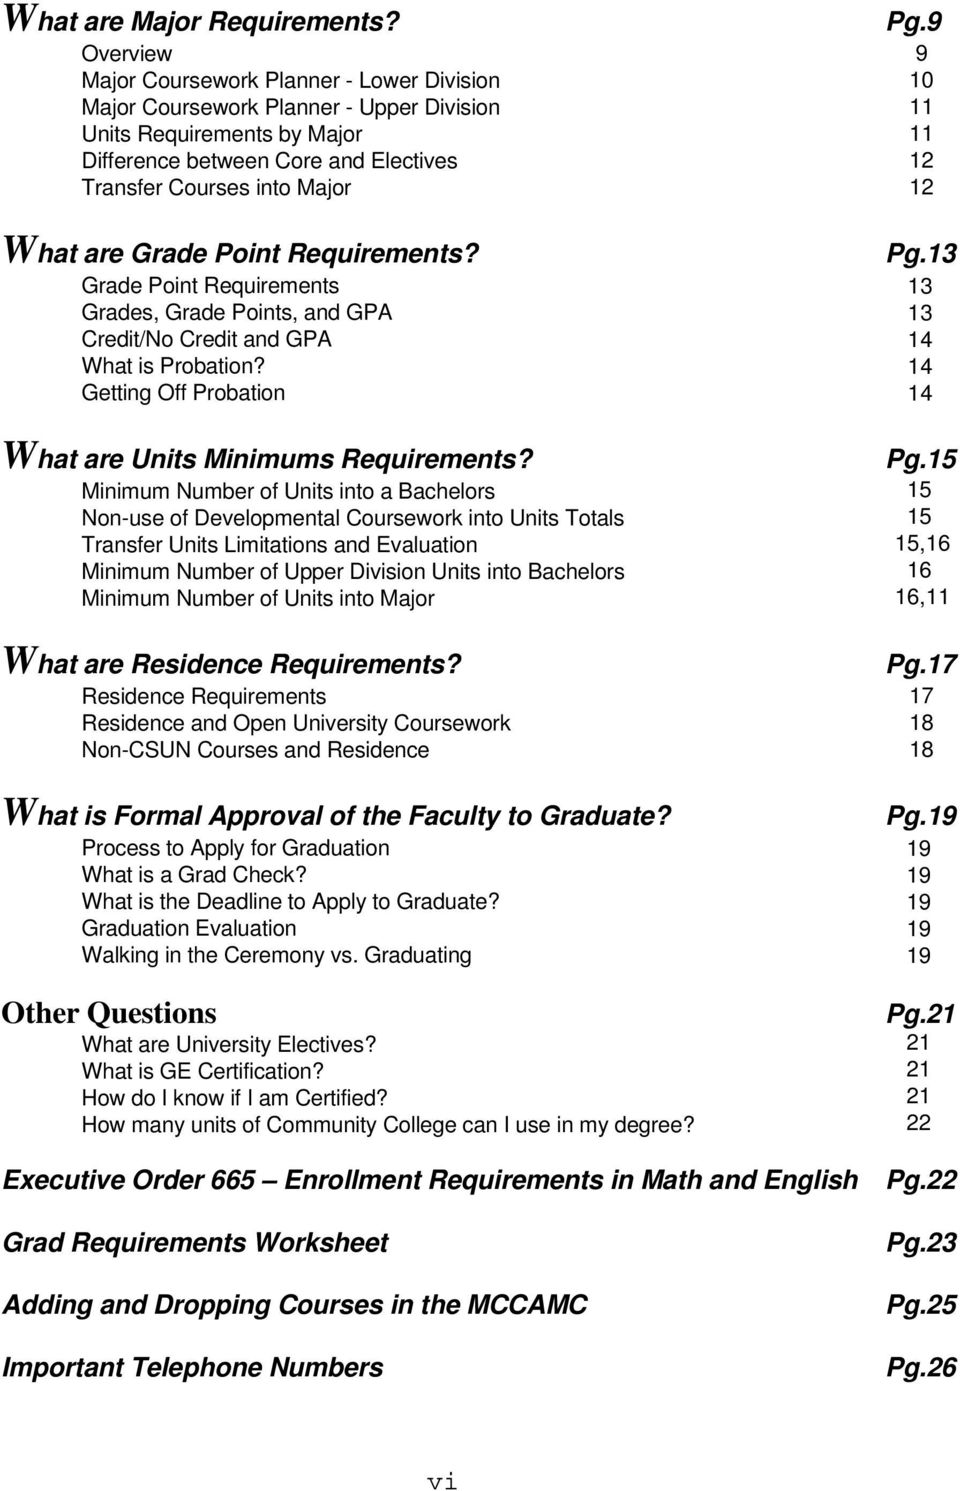 Grade Point Requirements? Grade Point Requirements Grades, Grade Points, and GPA Credit/No Credit and GPA What is Probation? Getting Off Probation What are Units Minimums Requirements?